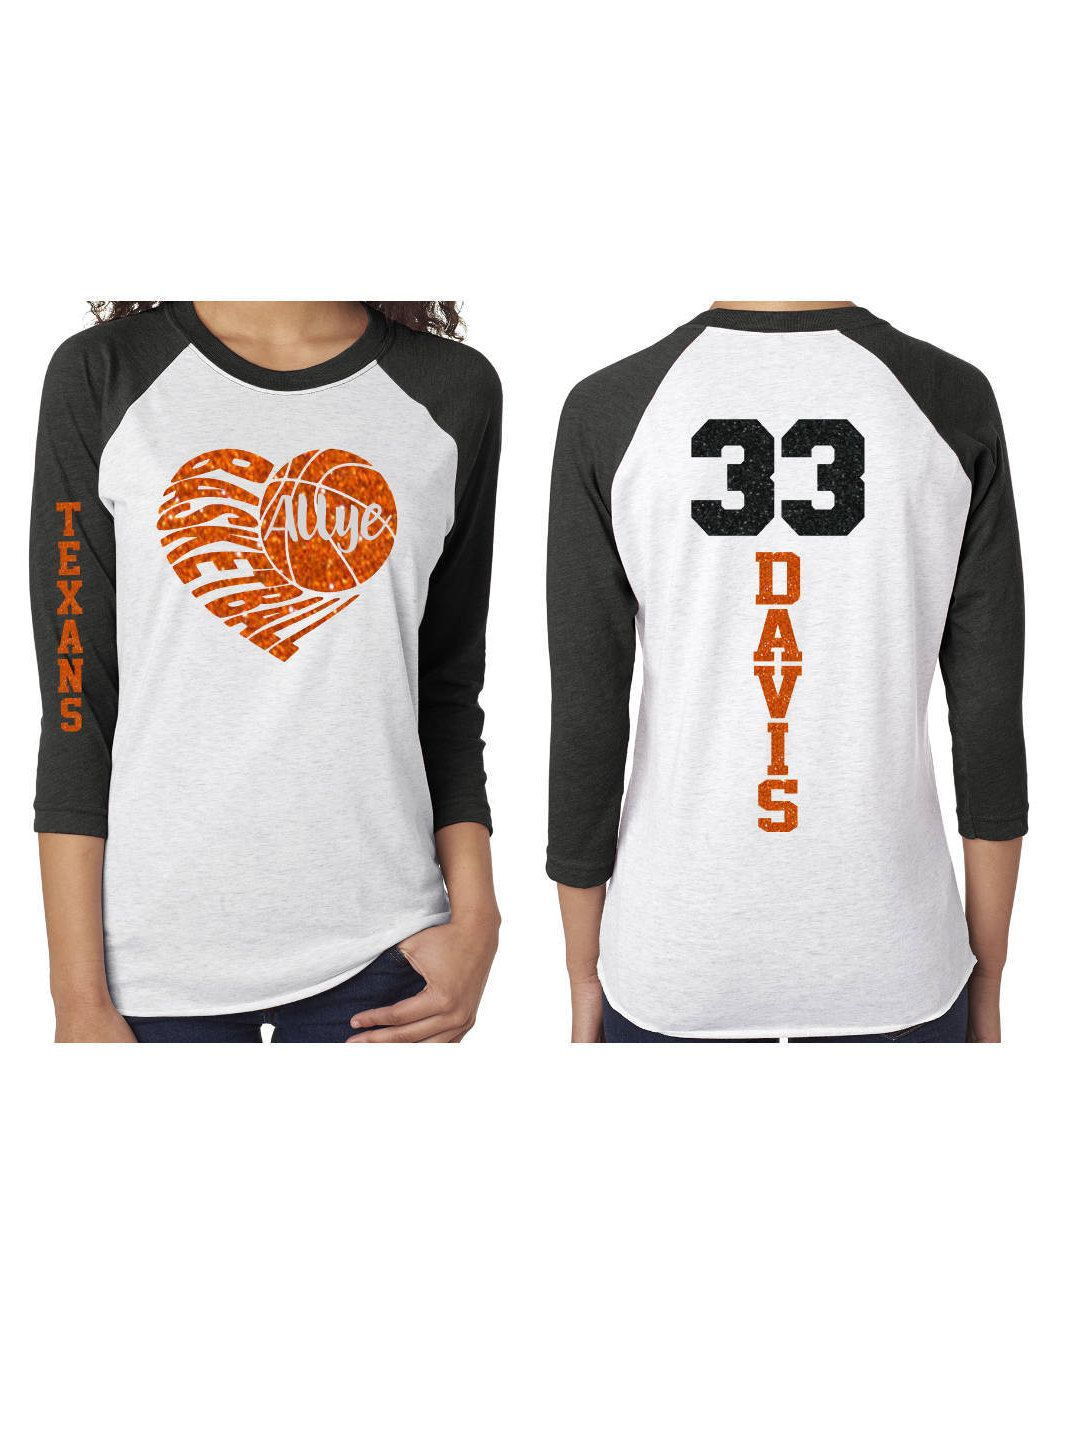 online store 4ff79 58c5f Glitter Basketball Shirt   Customized 3 4 Sleeve Raglan Basketball Mom Shirt  by GavinsAllyeDesigns on Etsy